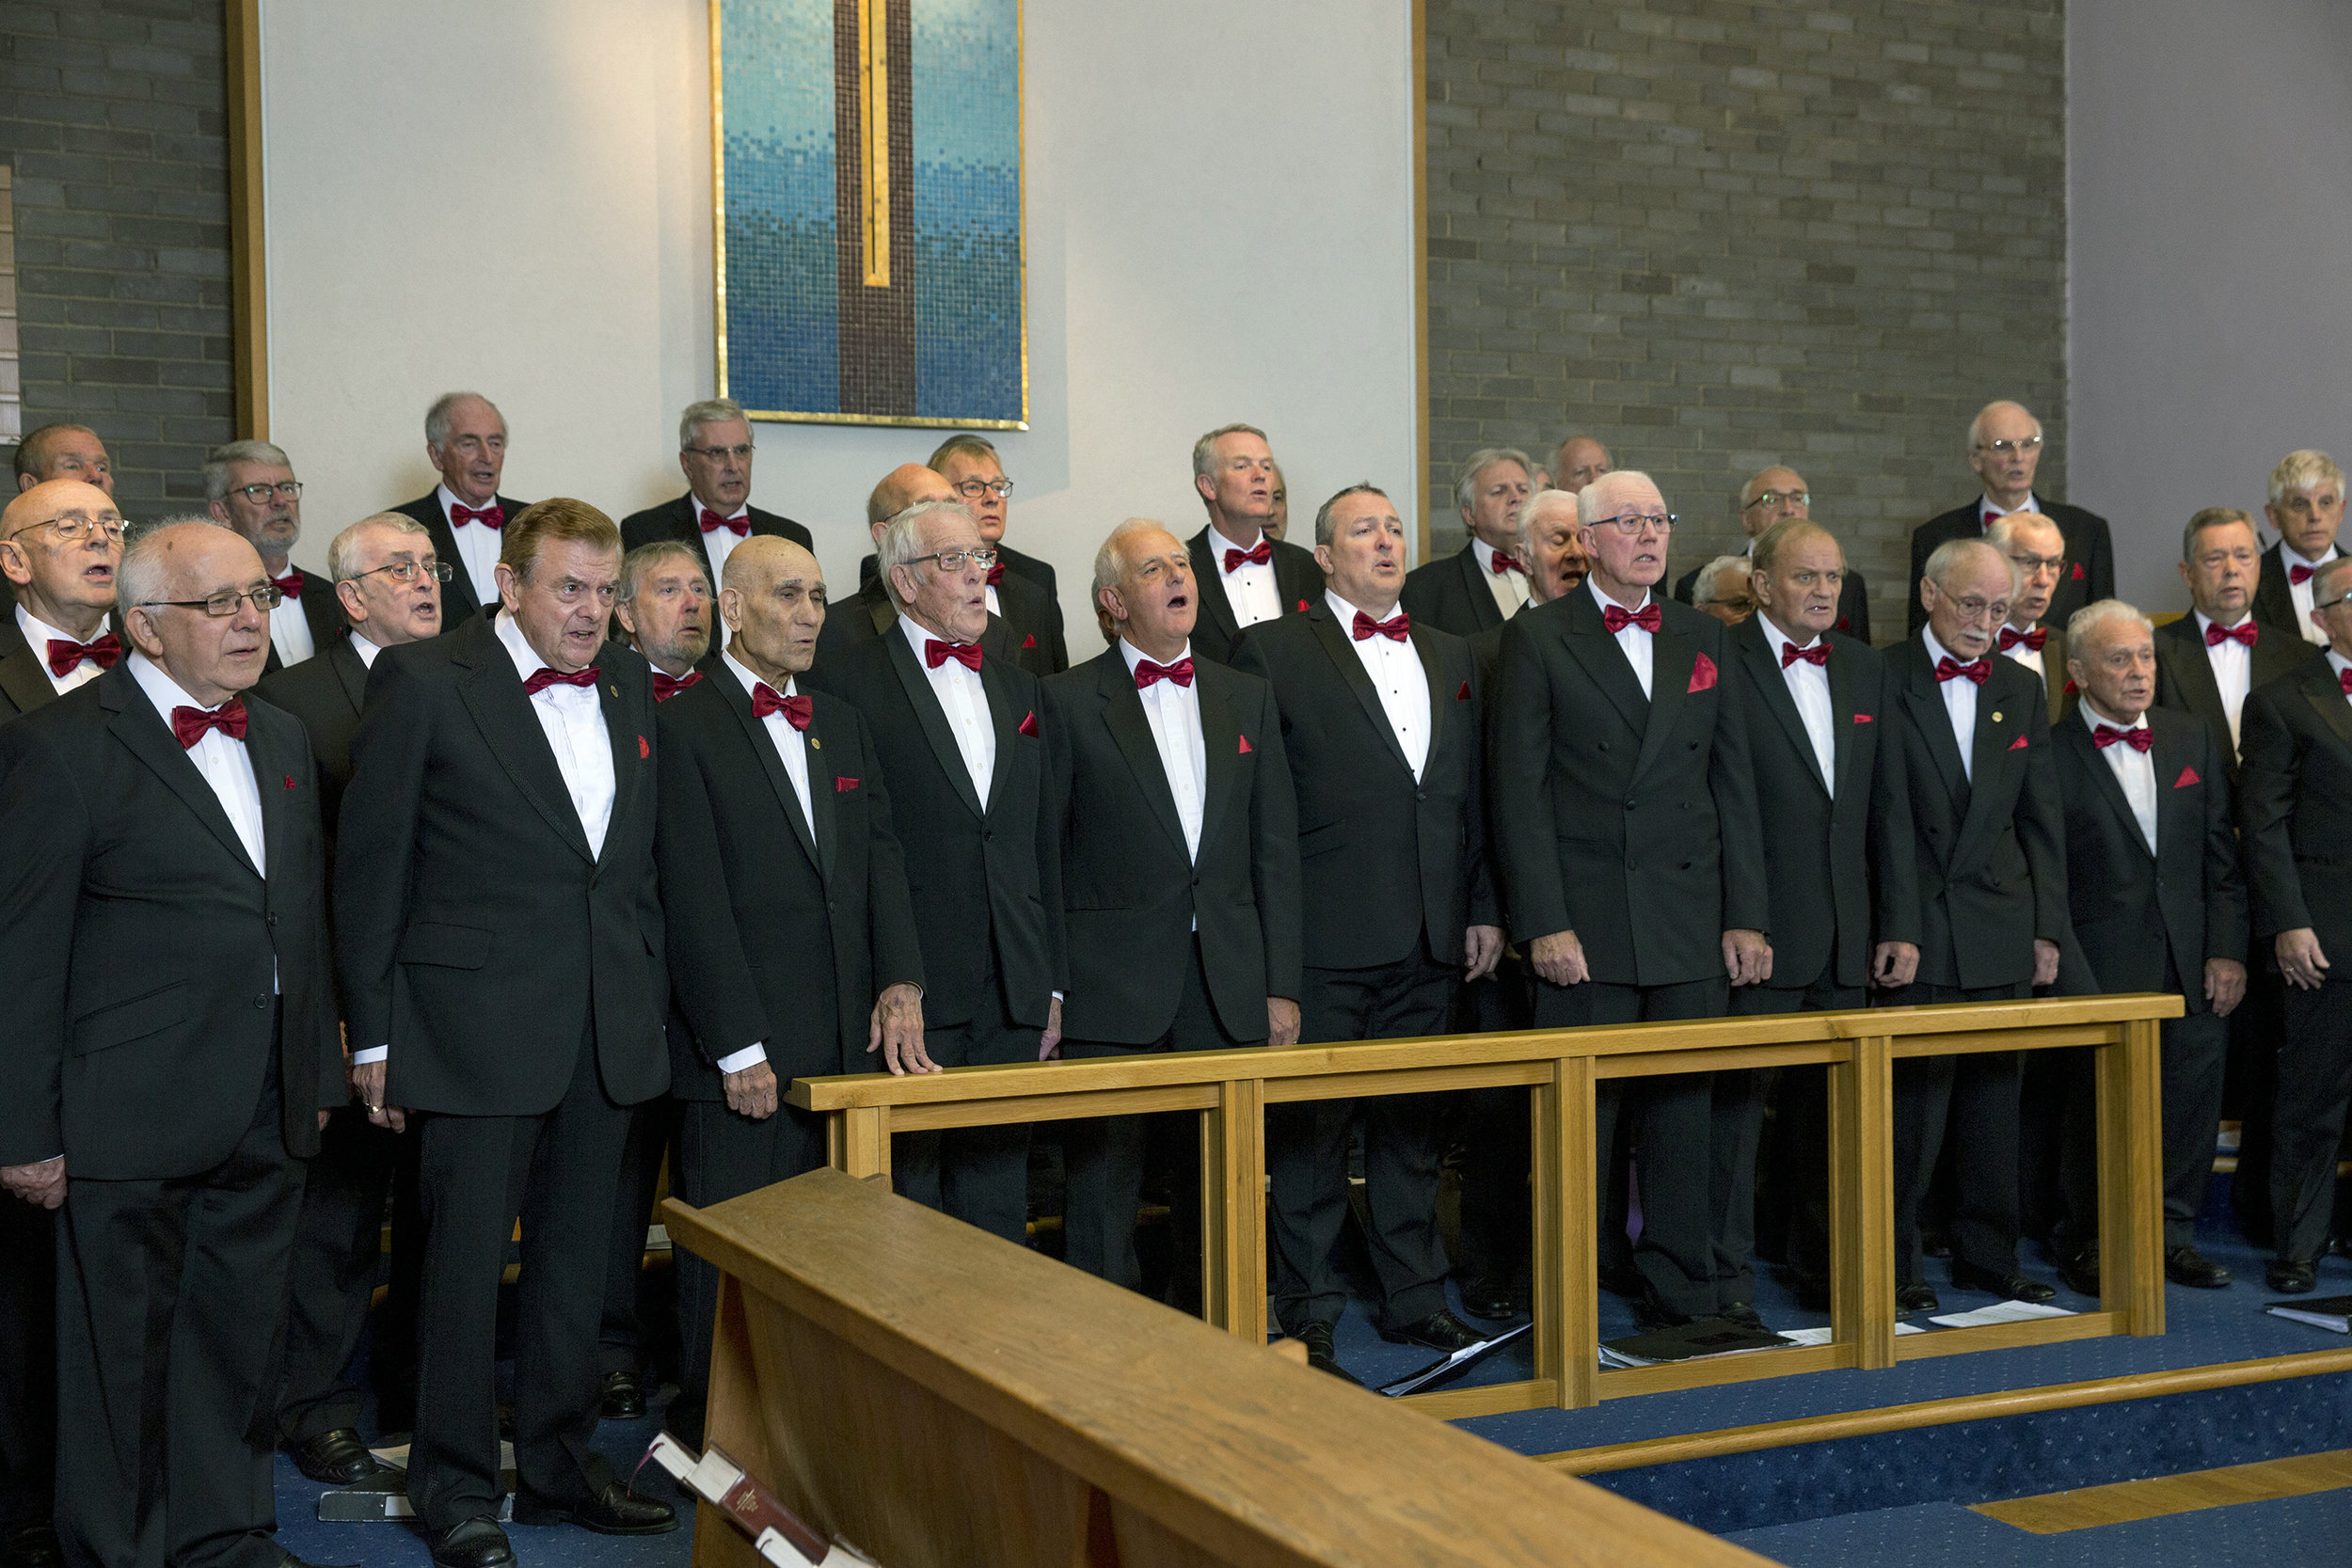 UNP Lloyds 39217 Chelmsford Male Voice Choir007.JPG